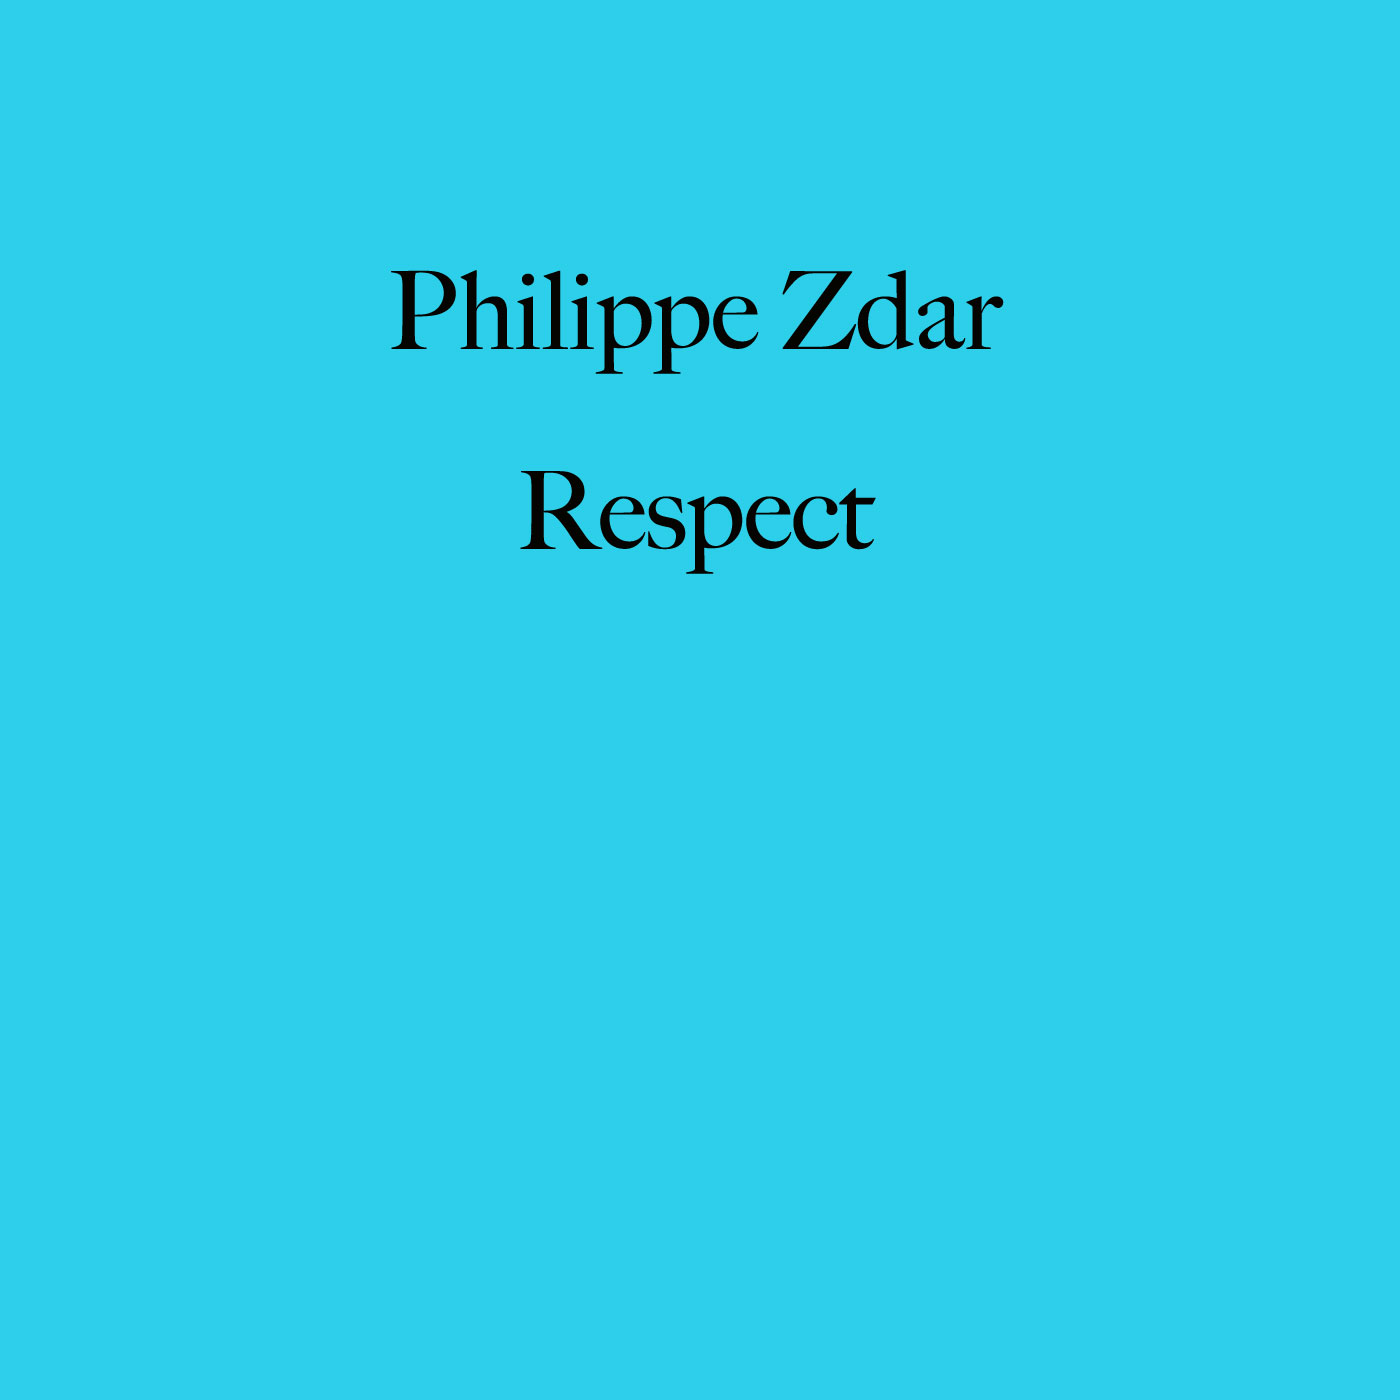 philippe zdar, erspect, motorbass, la funk mob, producer, dj, rest in peace, french, french touch